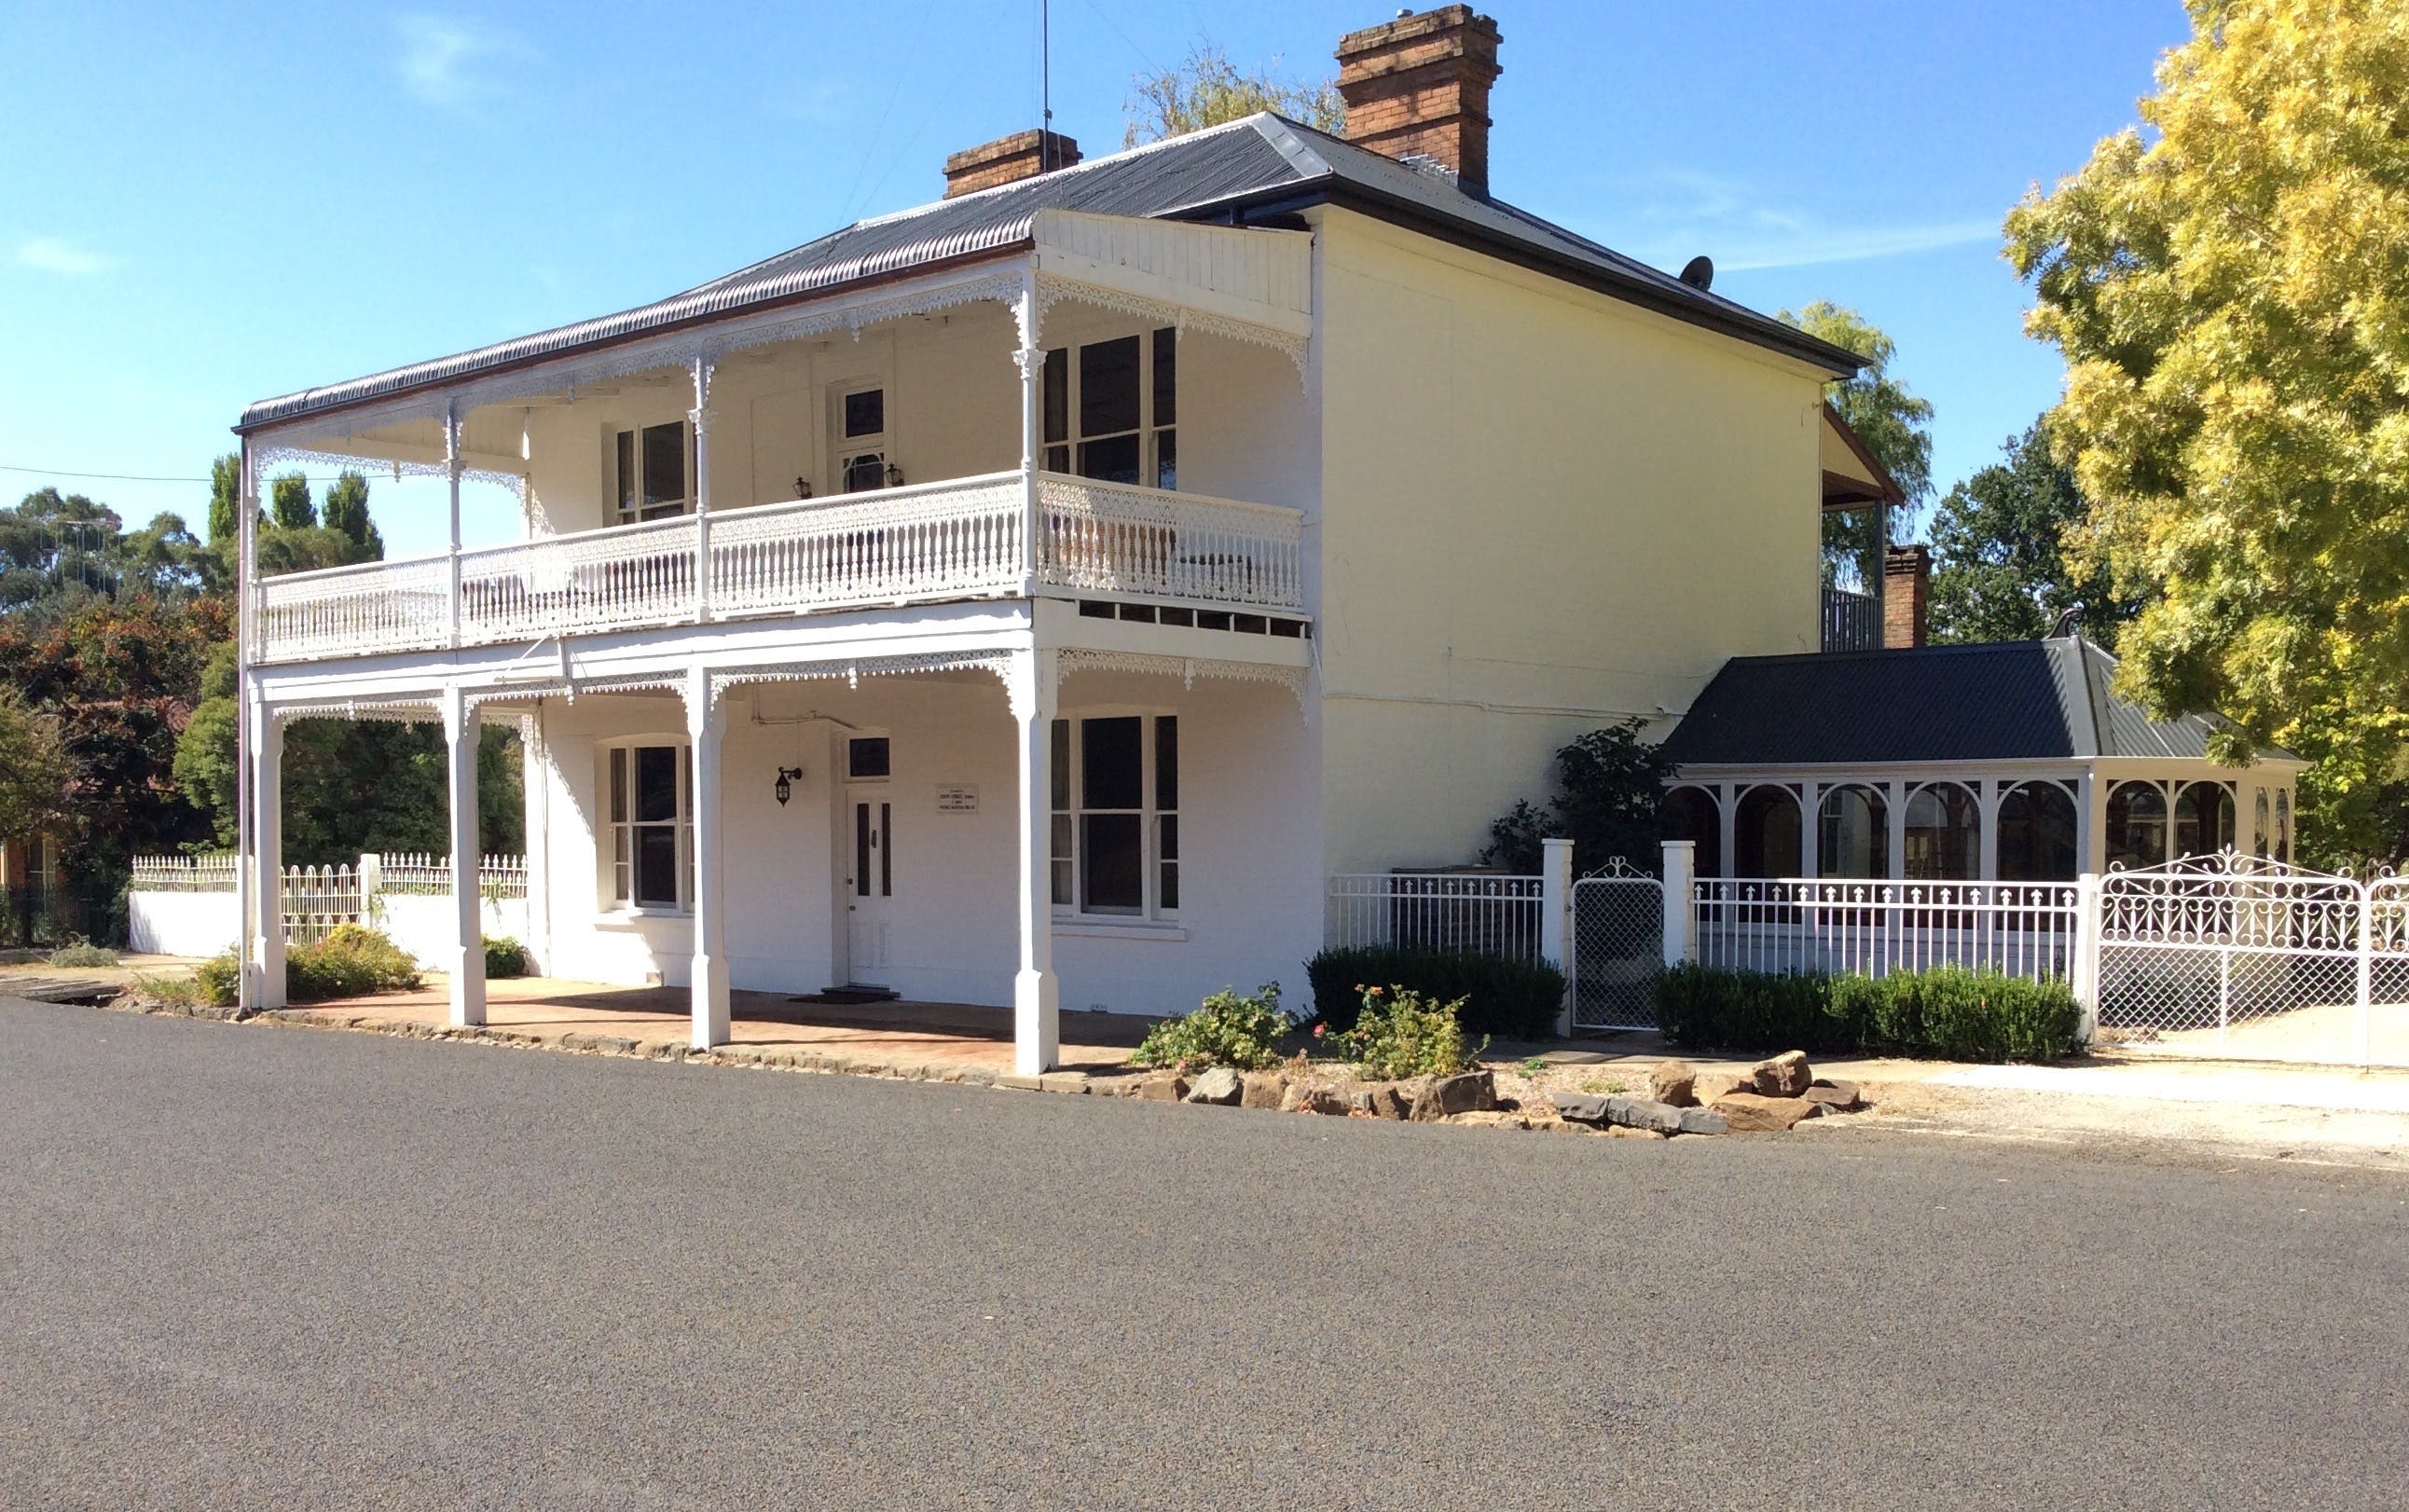 The White House Carcoar - Surfers Paradise Gold Coast